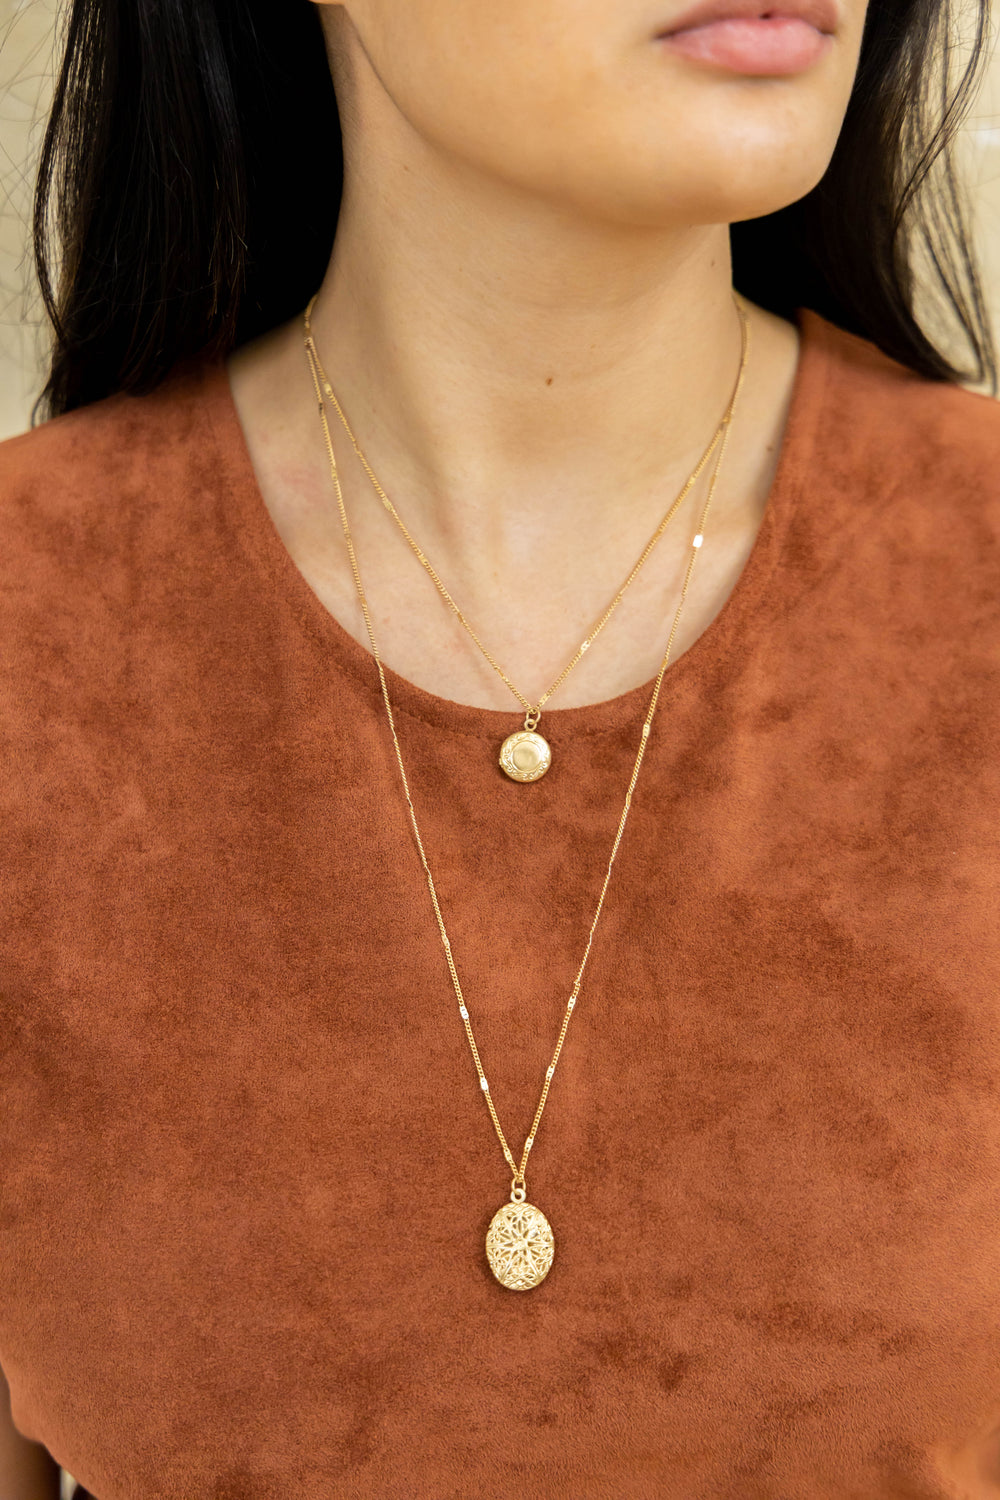 Gold pendant necklace on model